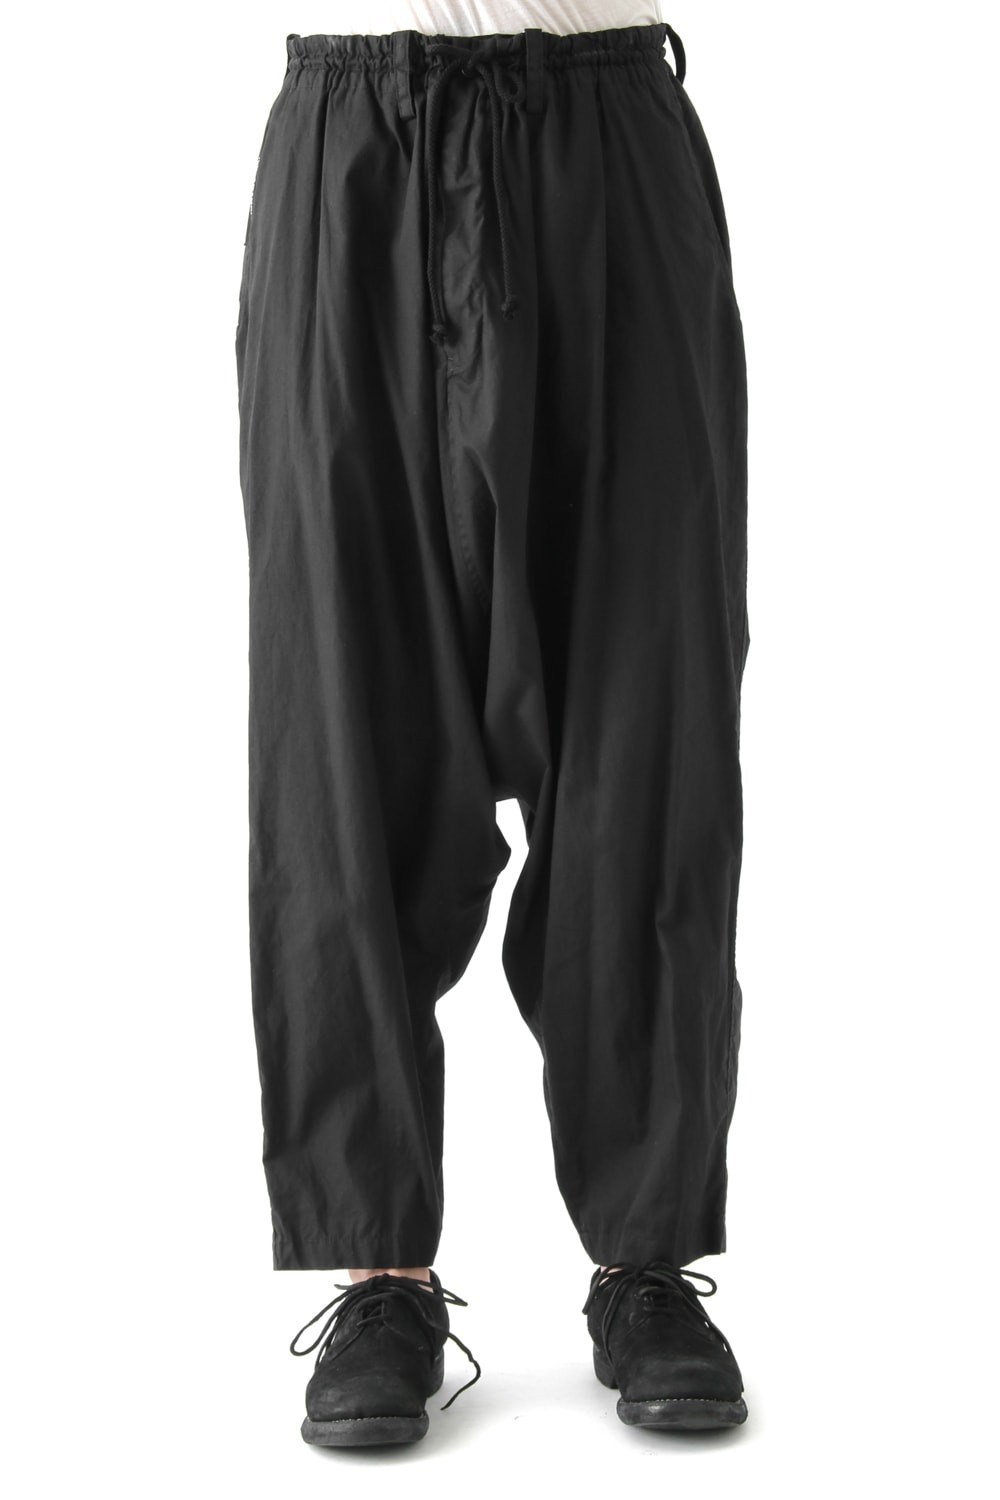 Sarouel Switched Parts Pants